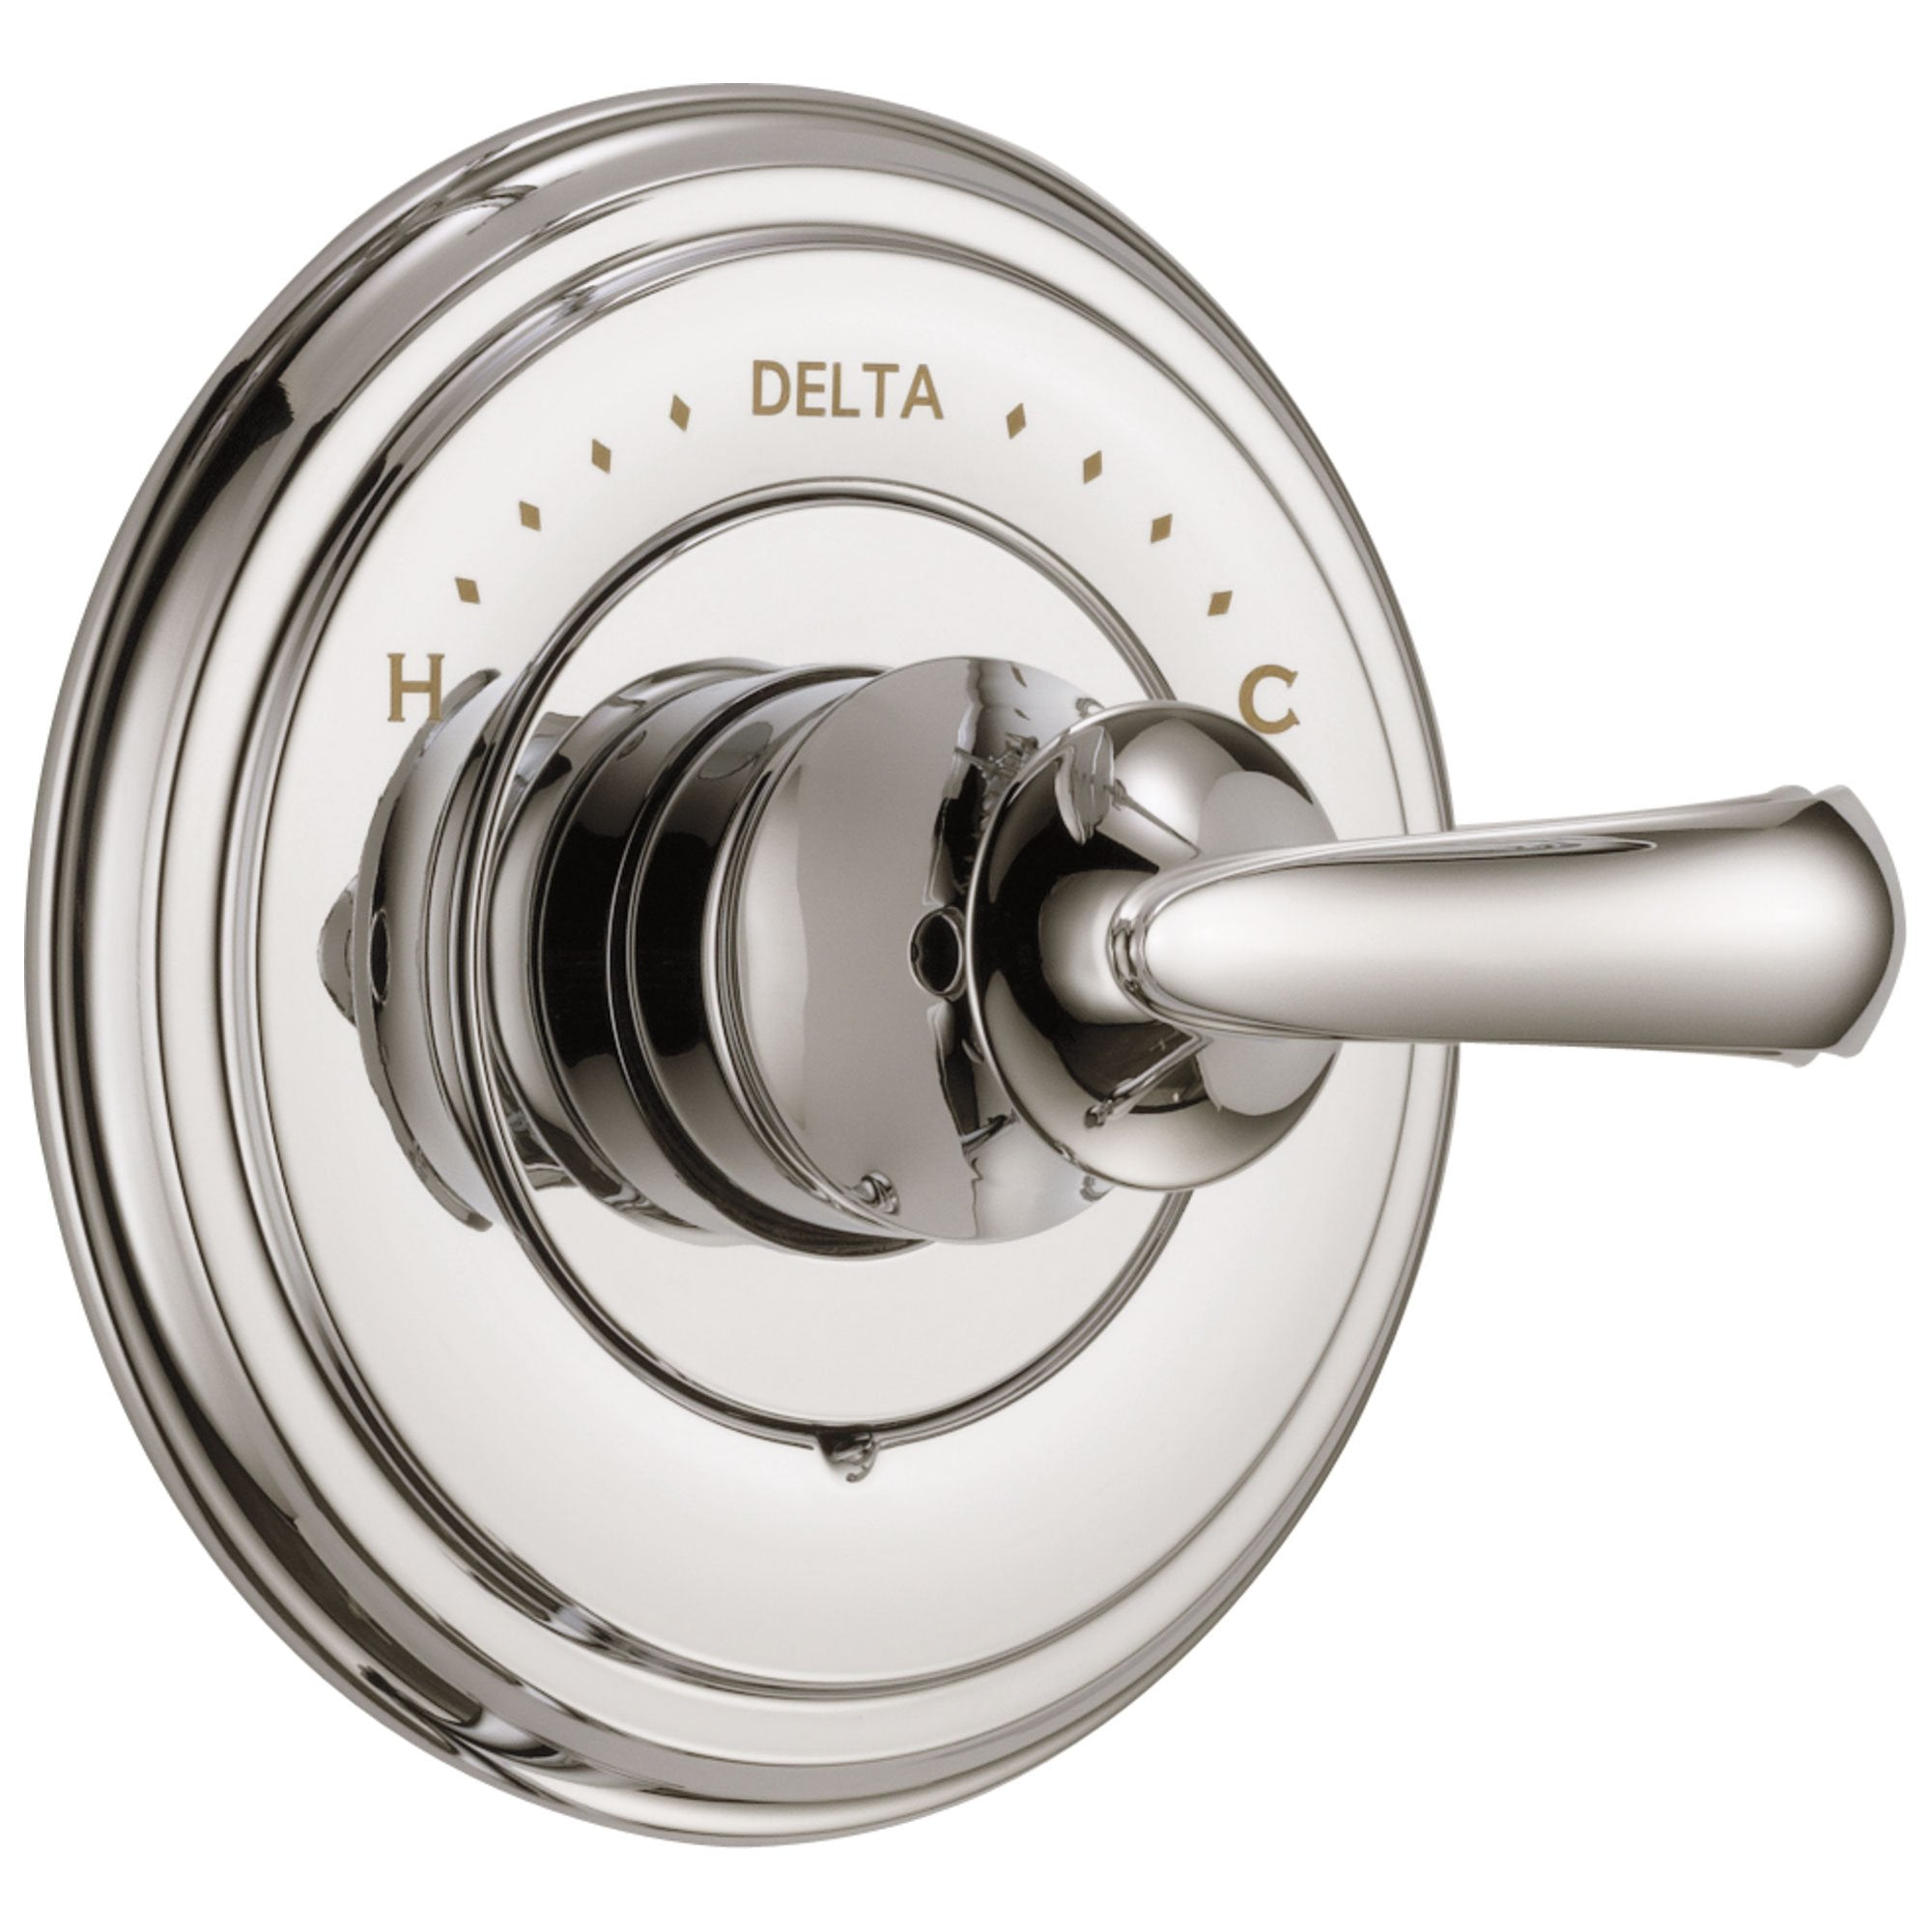 Delta Cassidy Collection Polished Nickel Monitor 14 Series Shower Valve Control Only INCLUDES Single French Scroll Lever Handle and Valve with Stops D1861V